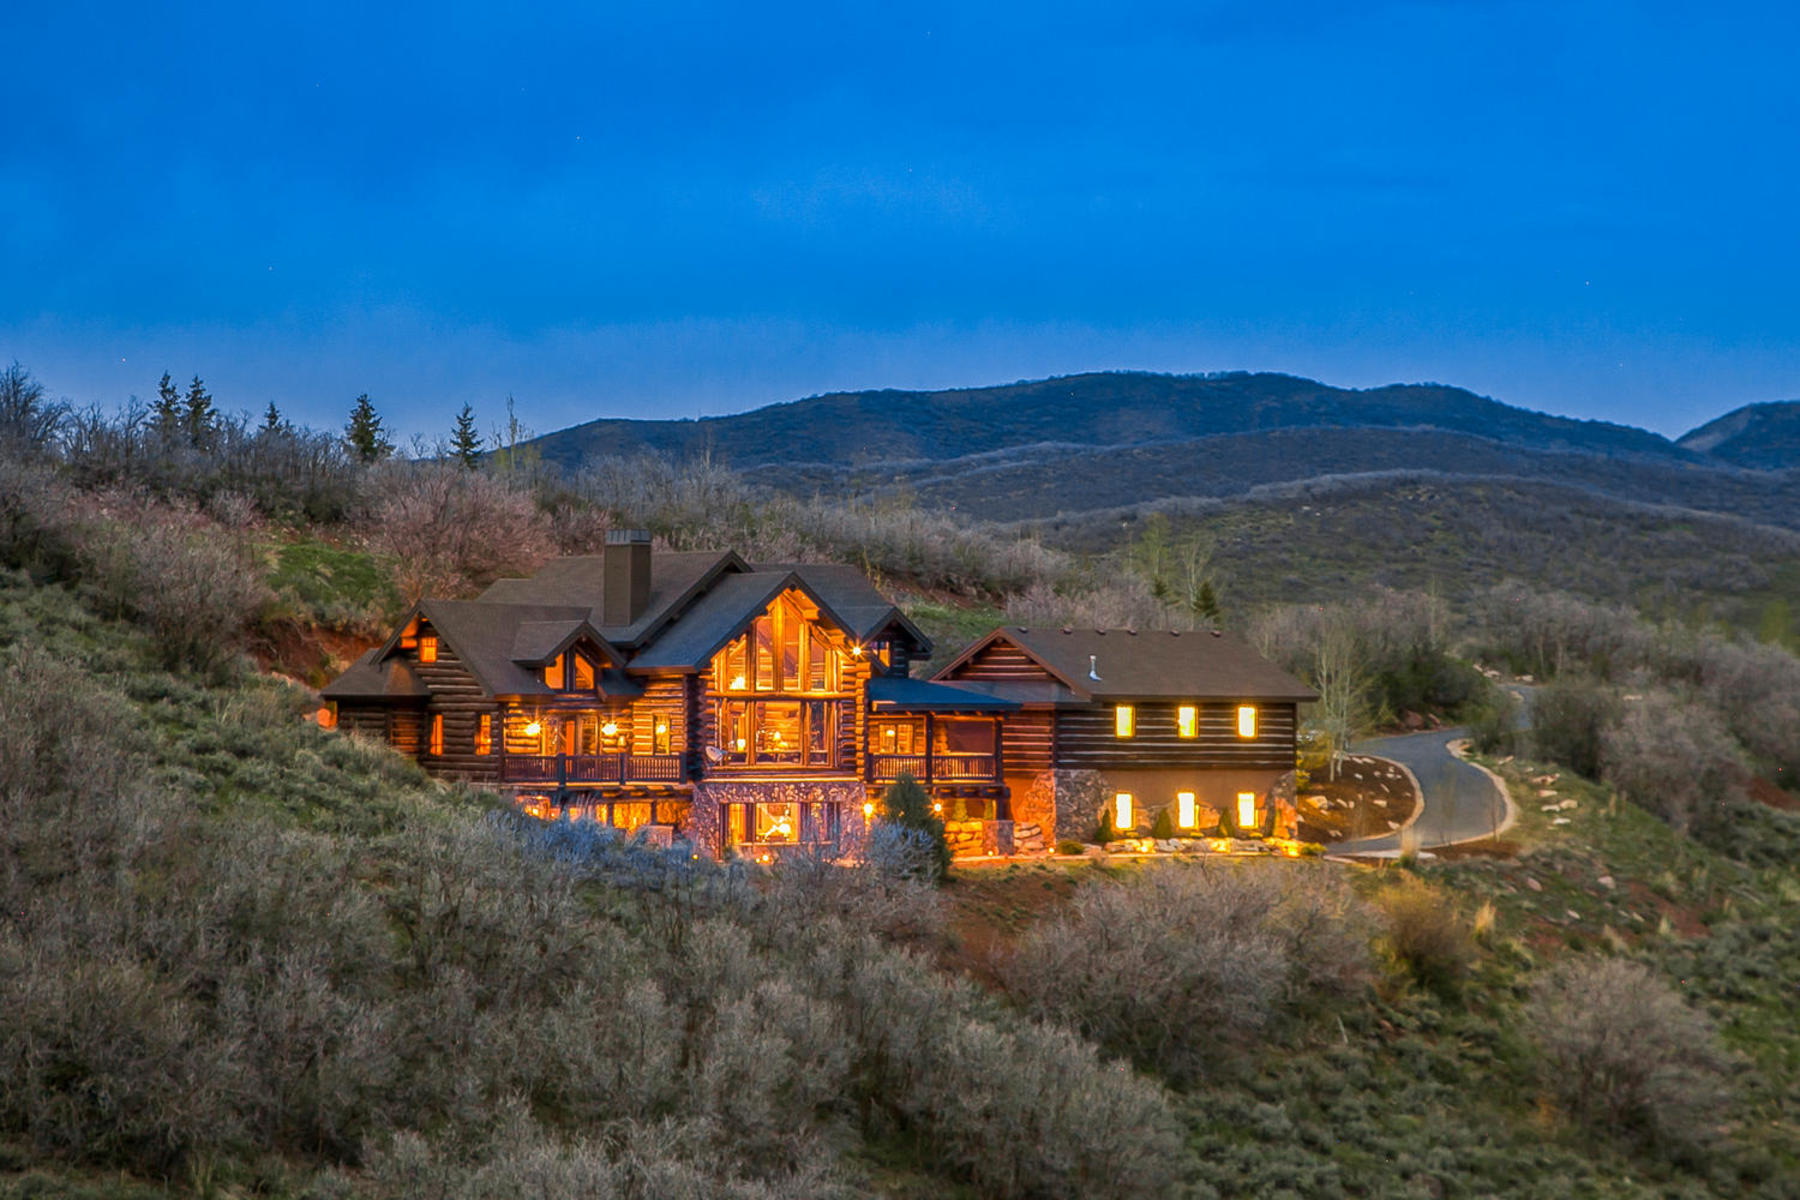 Single Family Home for Sale at Simply Stunning Mountain Home 4115 Moose Hollow Dr Park City, Utah, 84098 United States